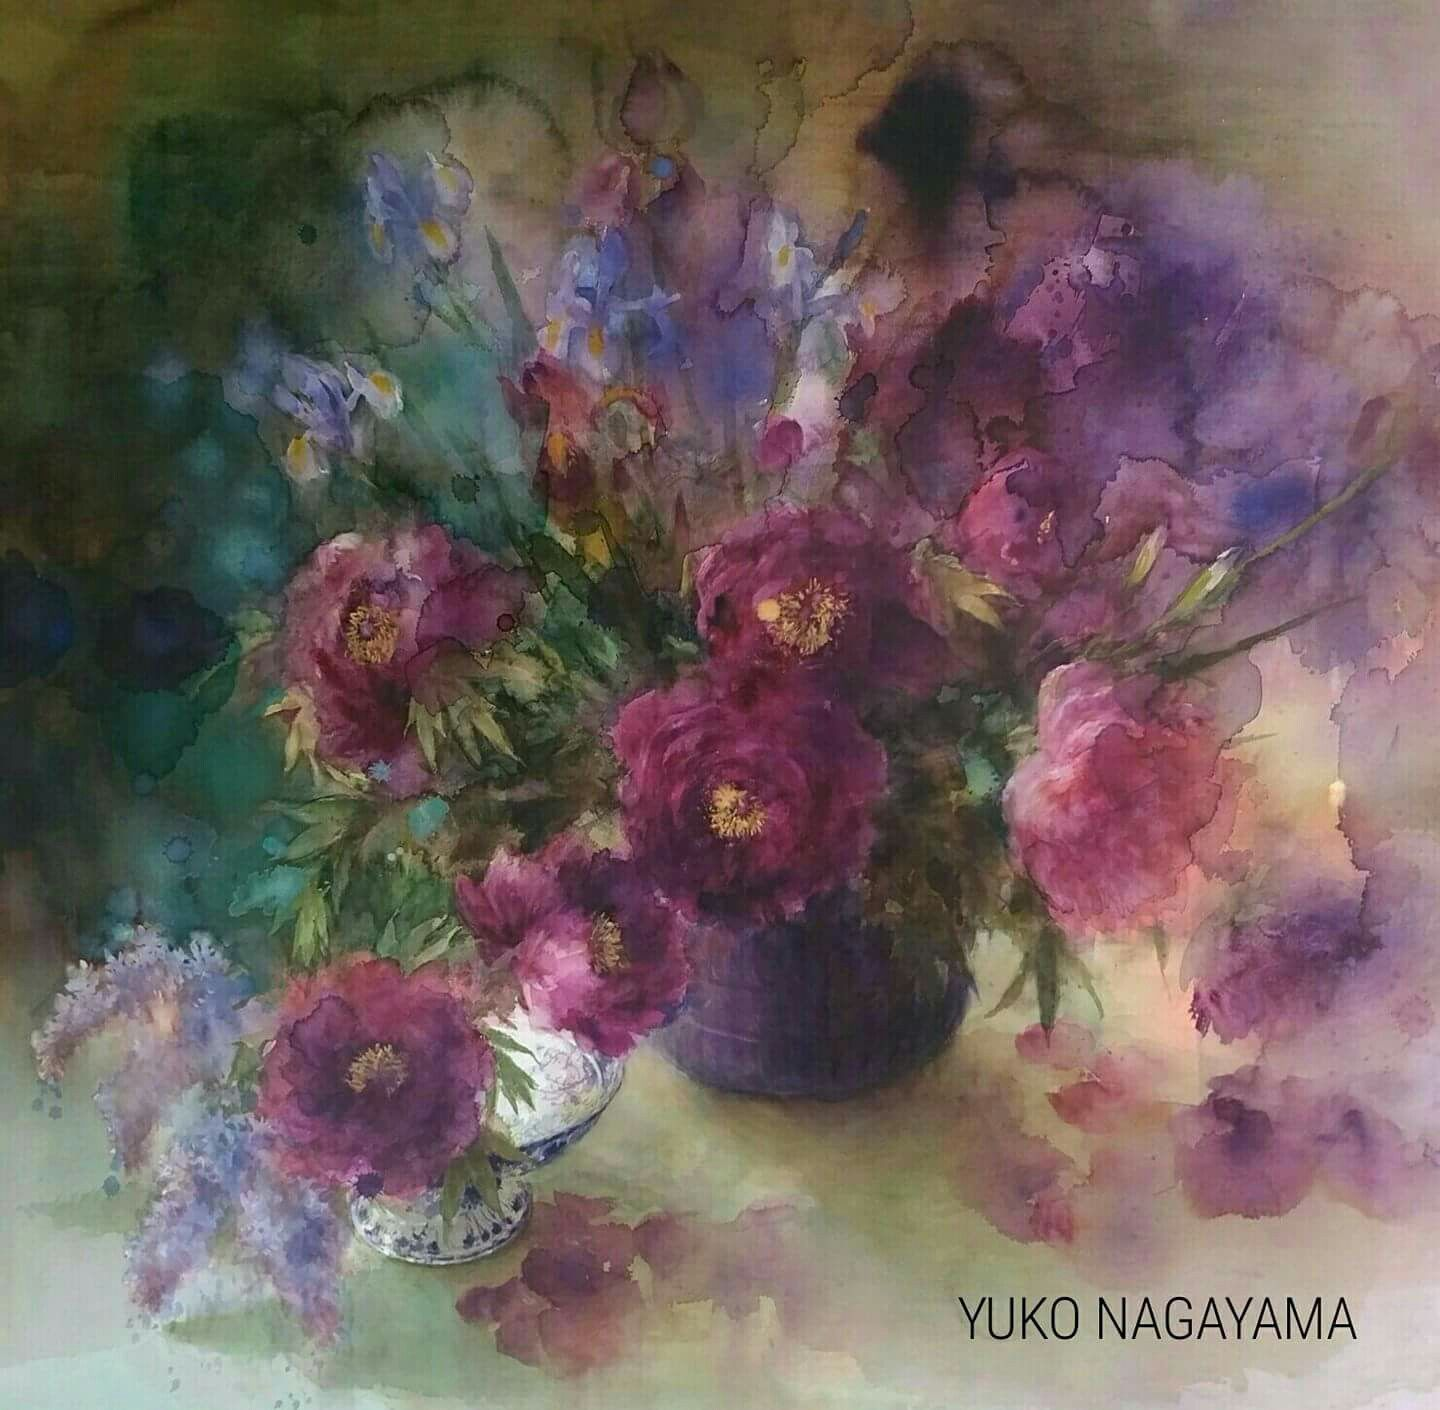 Pin By V On Yuko Nagayama Pinterest Watercolor Paintings And